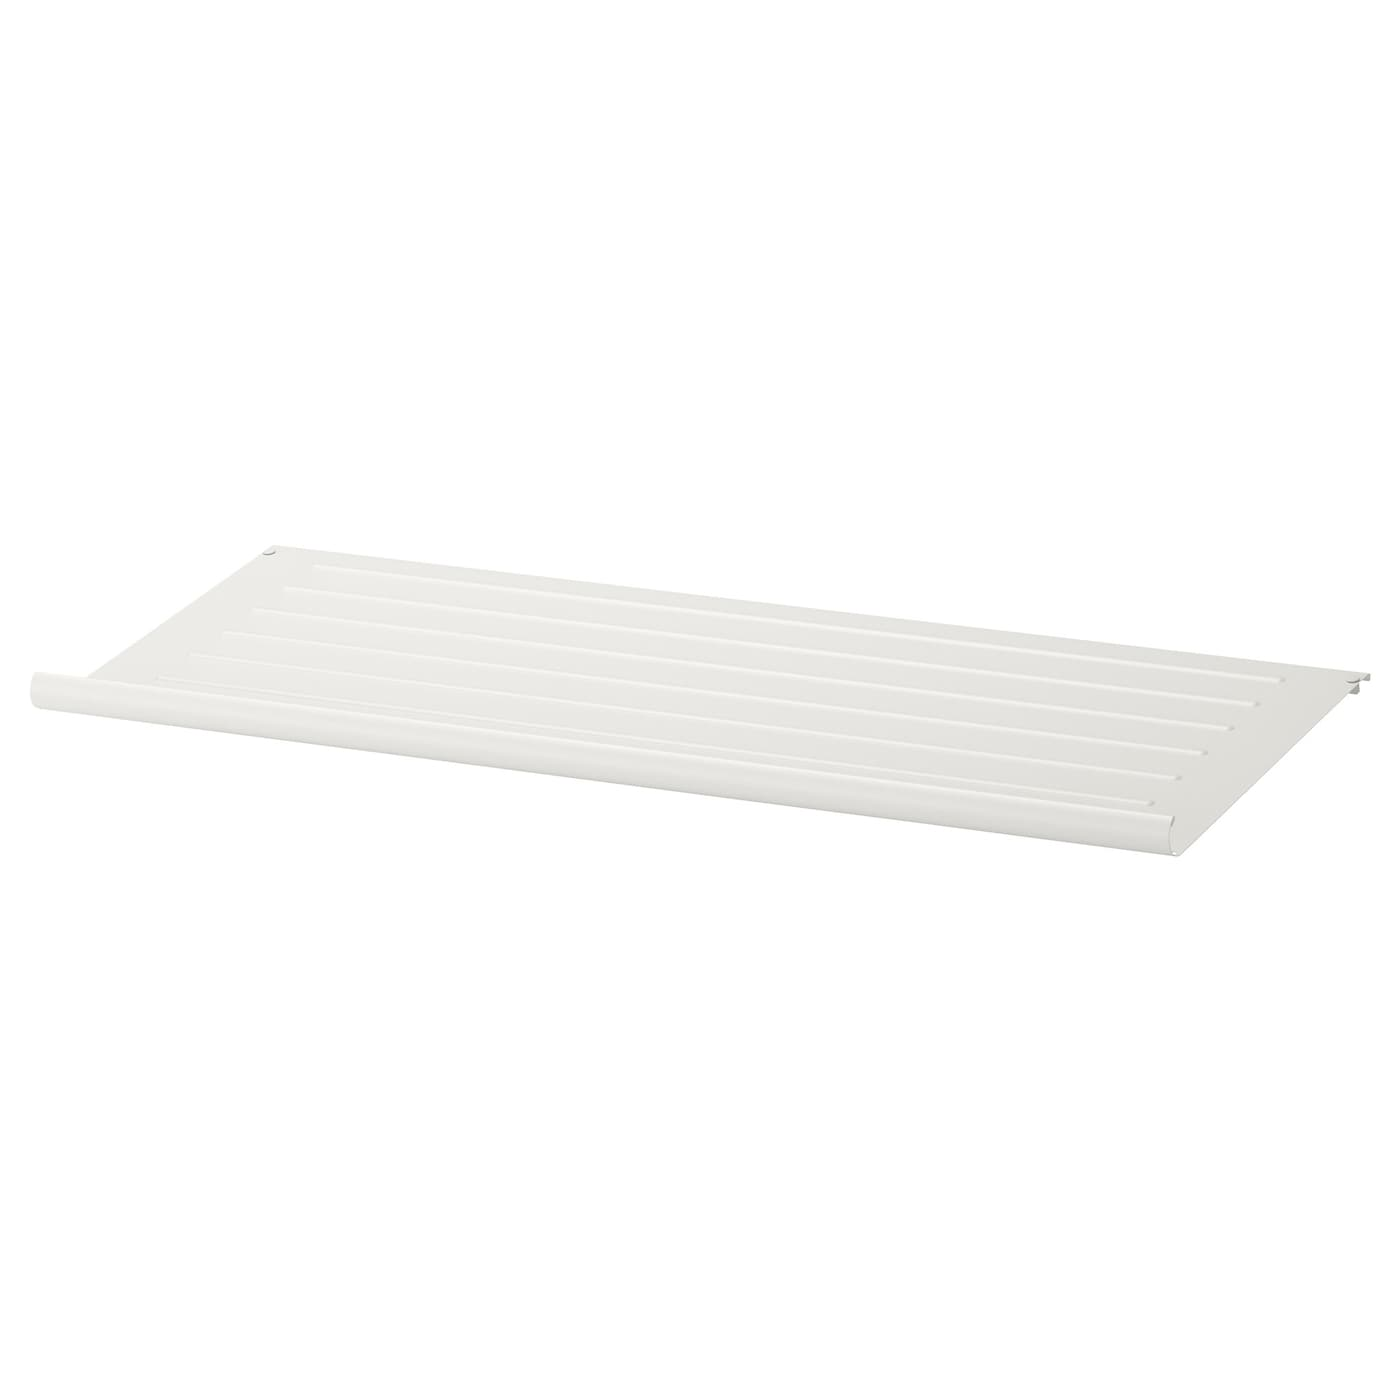 Komplement tag re chaussures blanc 100x35 cm ikea - Etagere a chaussures ikea ...